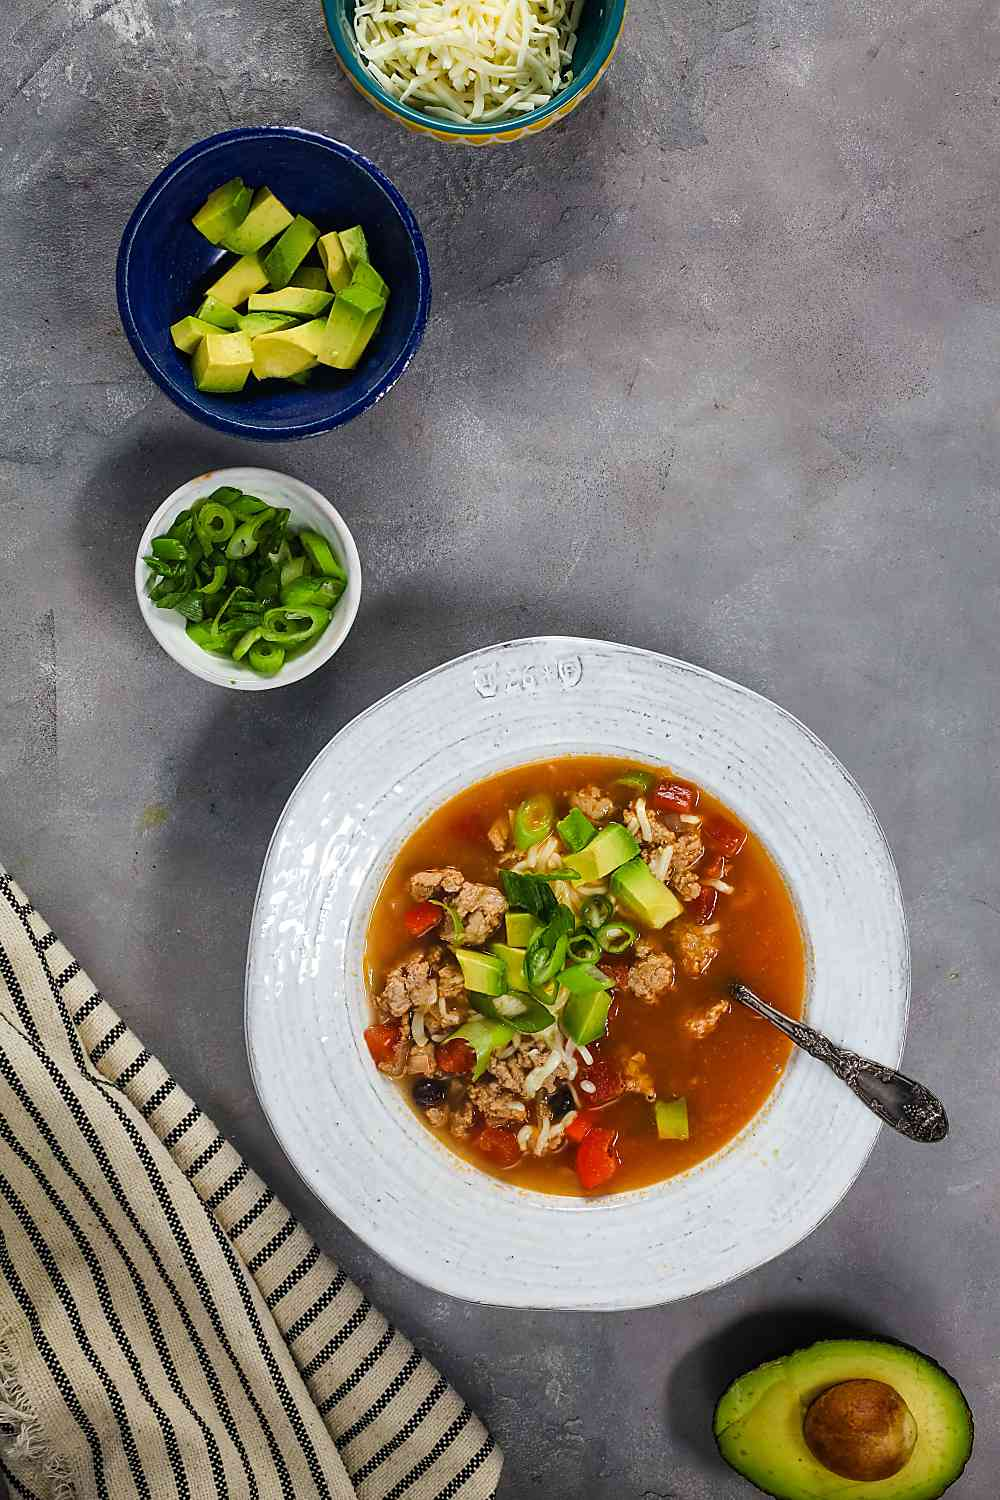 Turkey enchilada soup with various toppings